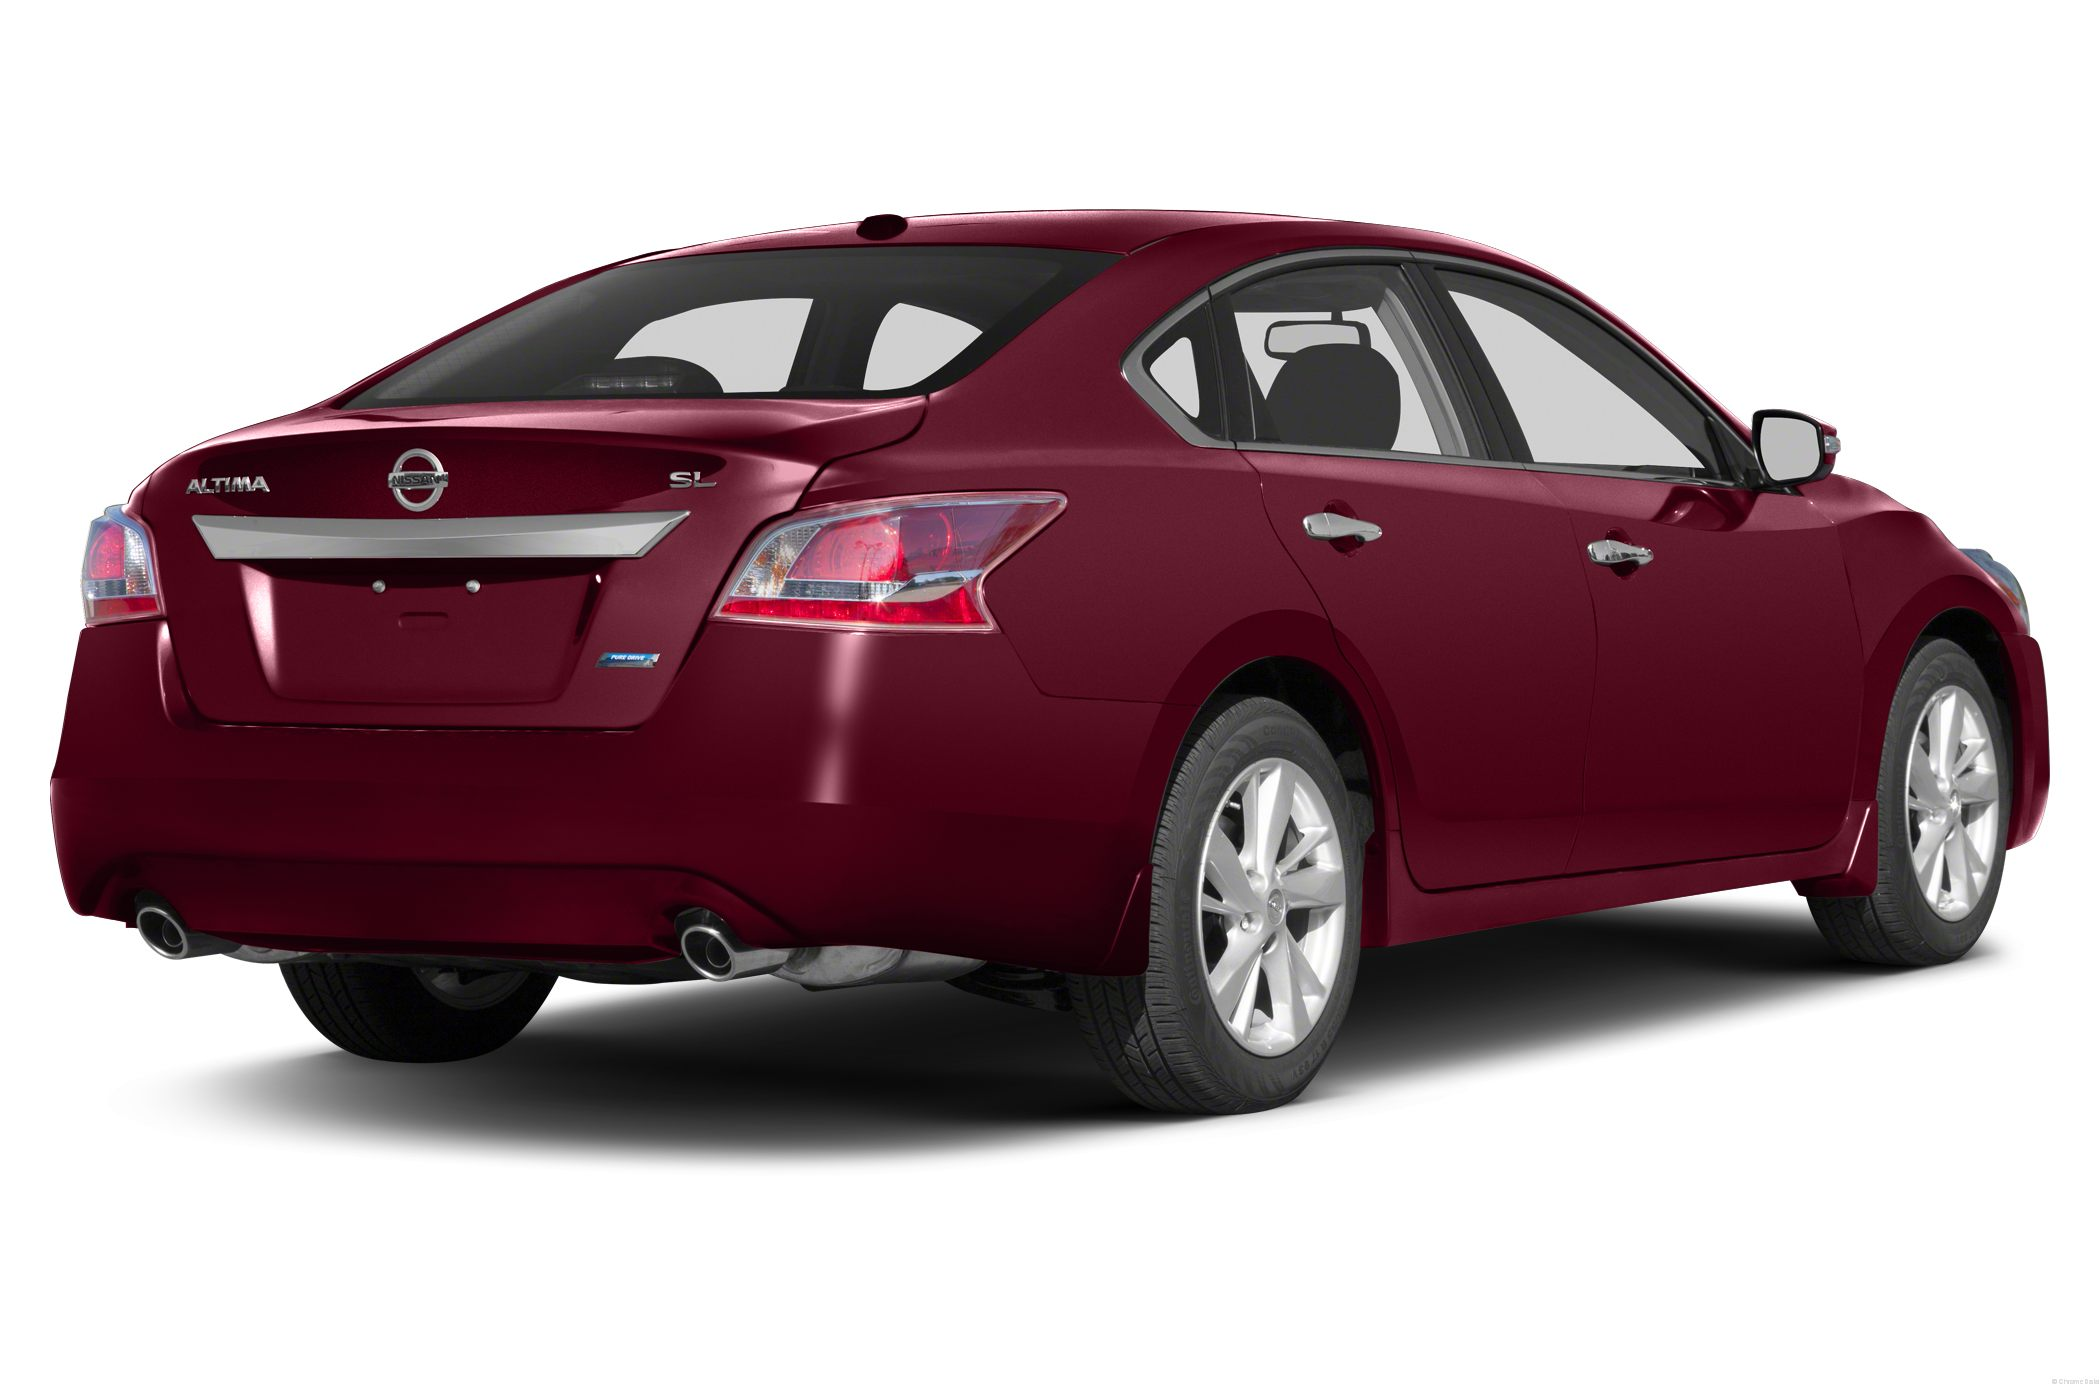 2013 Nissan Altima 28 Widescreen Car Wallpaper